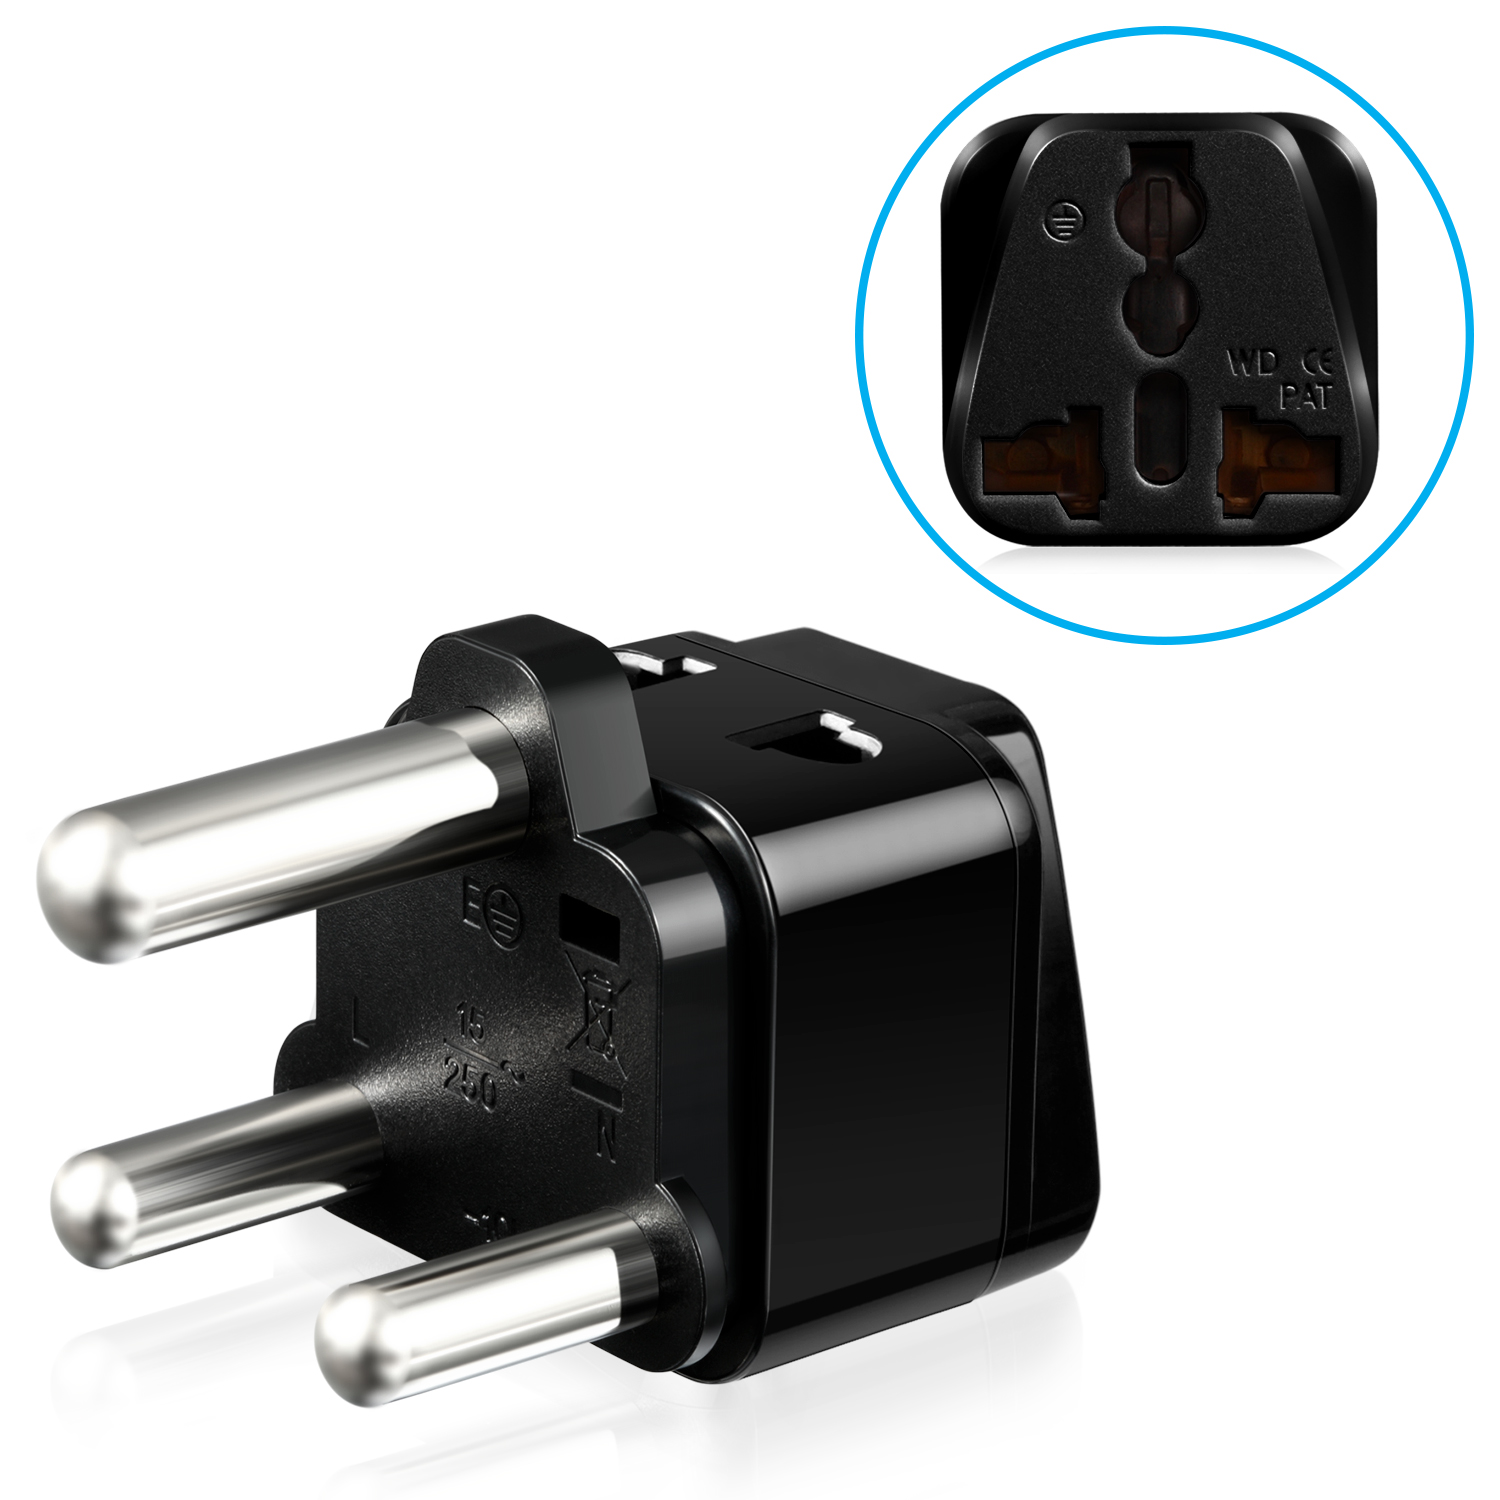 Fosmon Type M Universal Power Adapter - Black